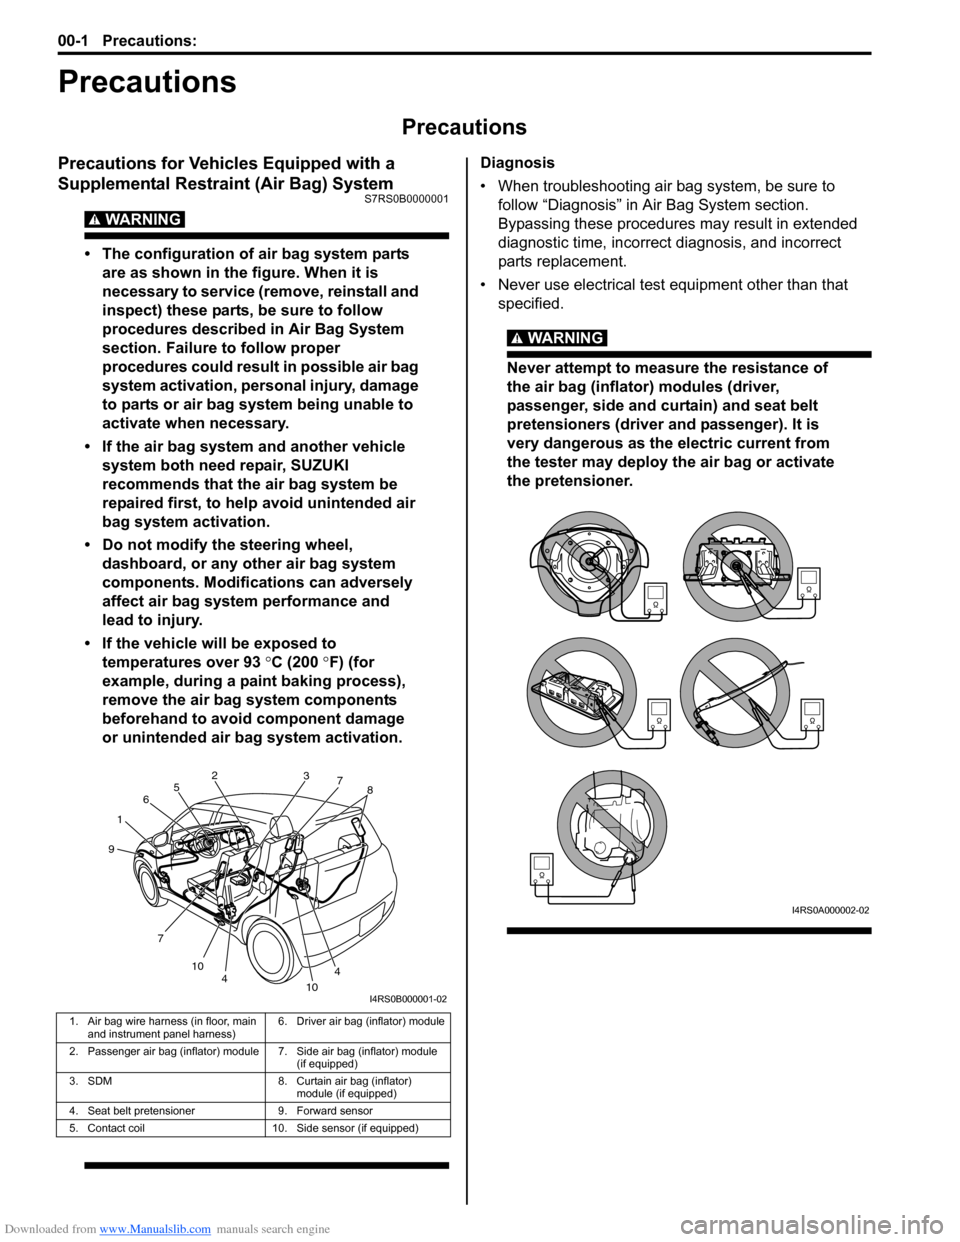 SUZUKI SWIFT 2008 2.G Service Workshop Manual Downloaded from www.Manualslib.com manuals search engine 00-1 Precautions:  Precautions Precautions Precautions Precautions for Vehicles Equipped with a  Supplemental Restraint (Air Bag) System S7RS0B